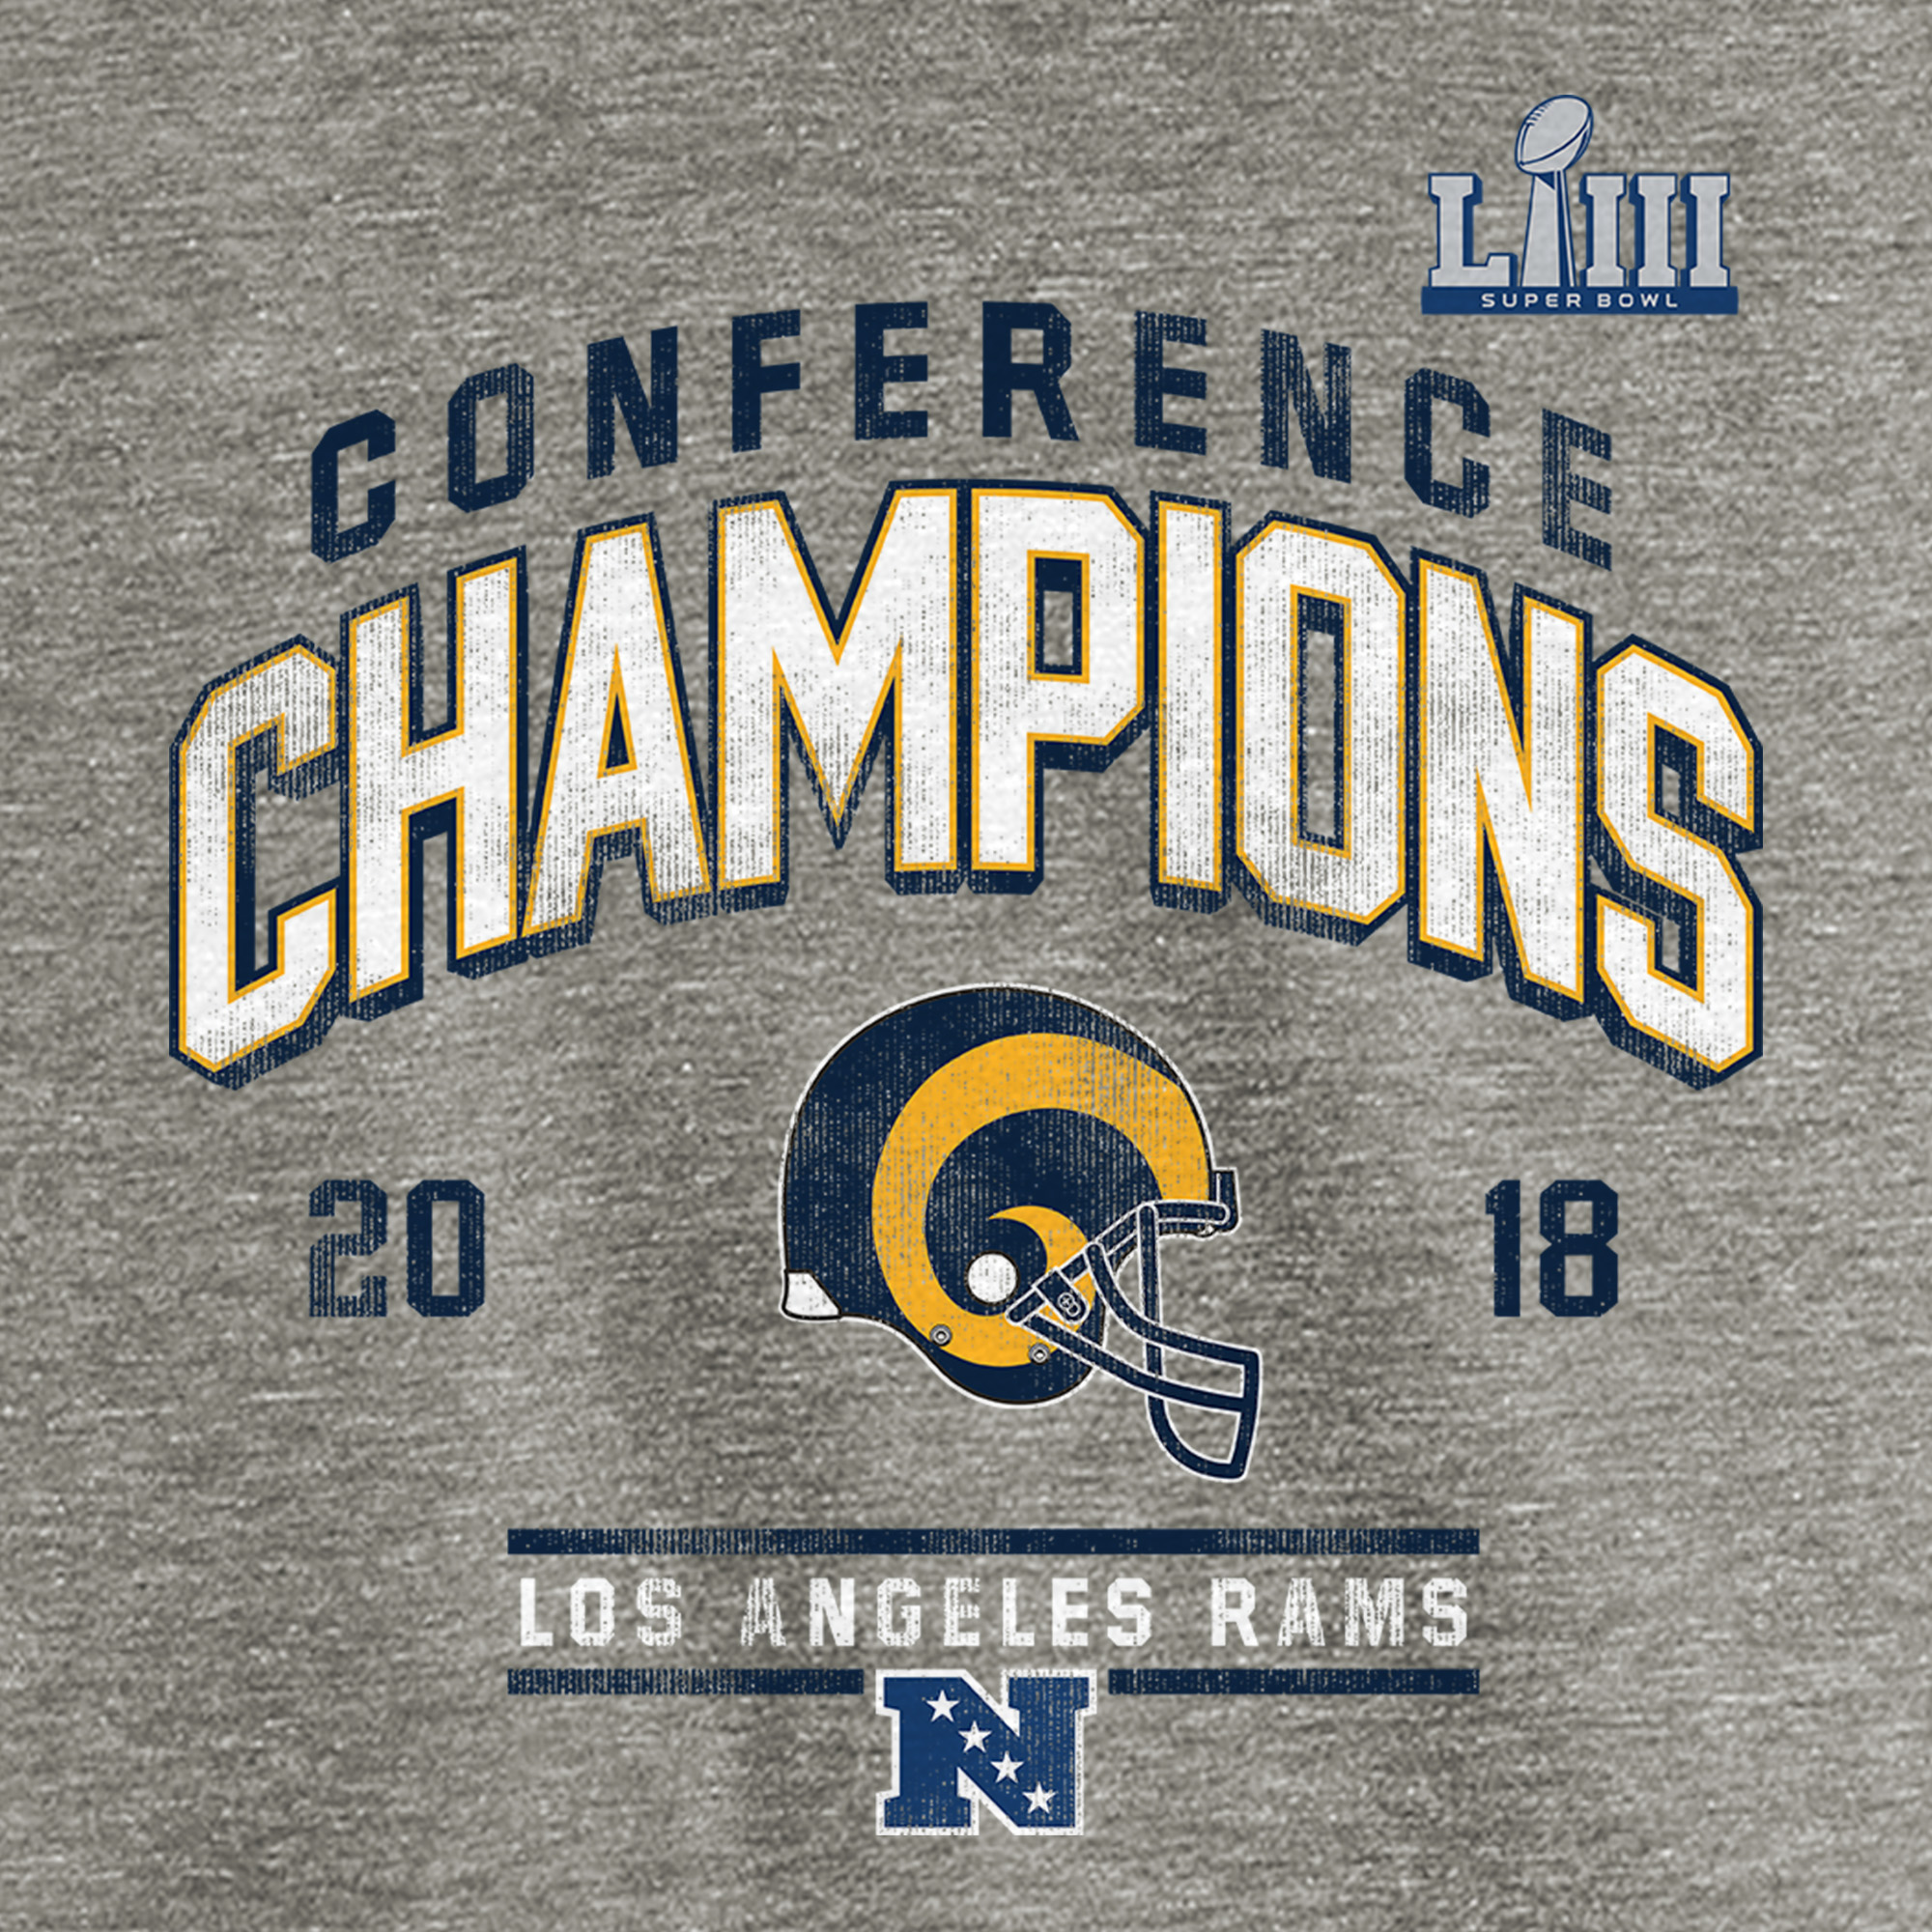 c99043d1 Los Angeles Rams NFL Pro Line by Fanatics Branded 2018 NFC Champions  Halfback Sweep Raglan Long Sleeve T-Shirt - Heather Gray - Walmart.com